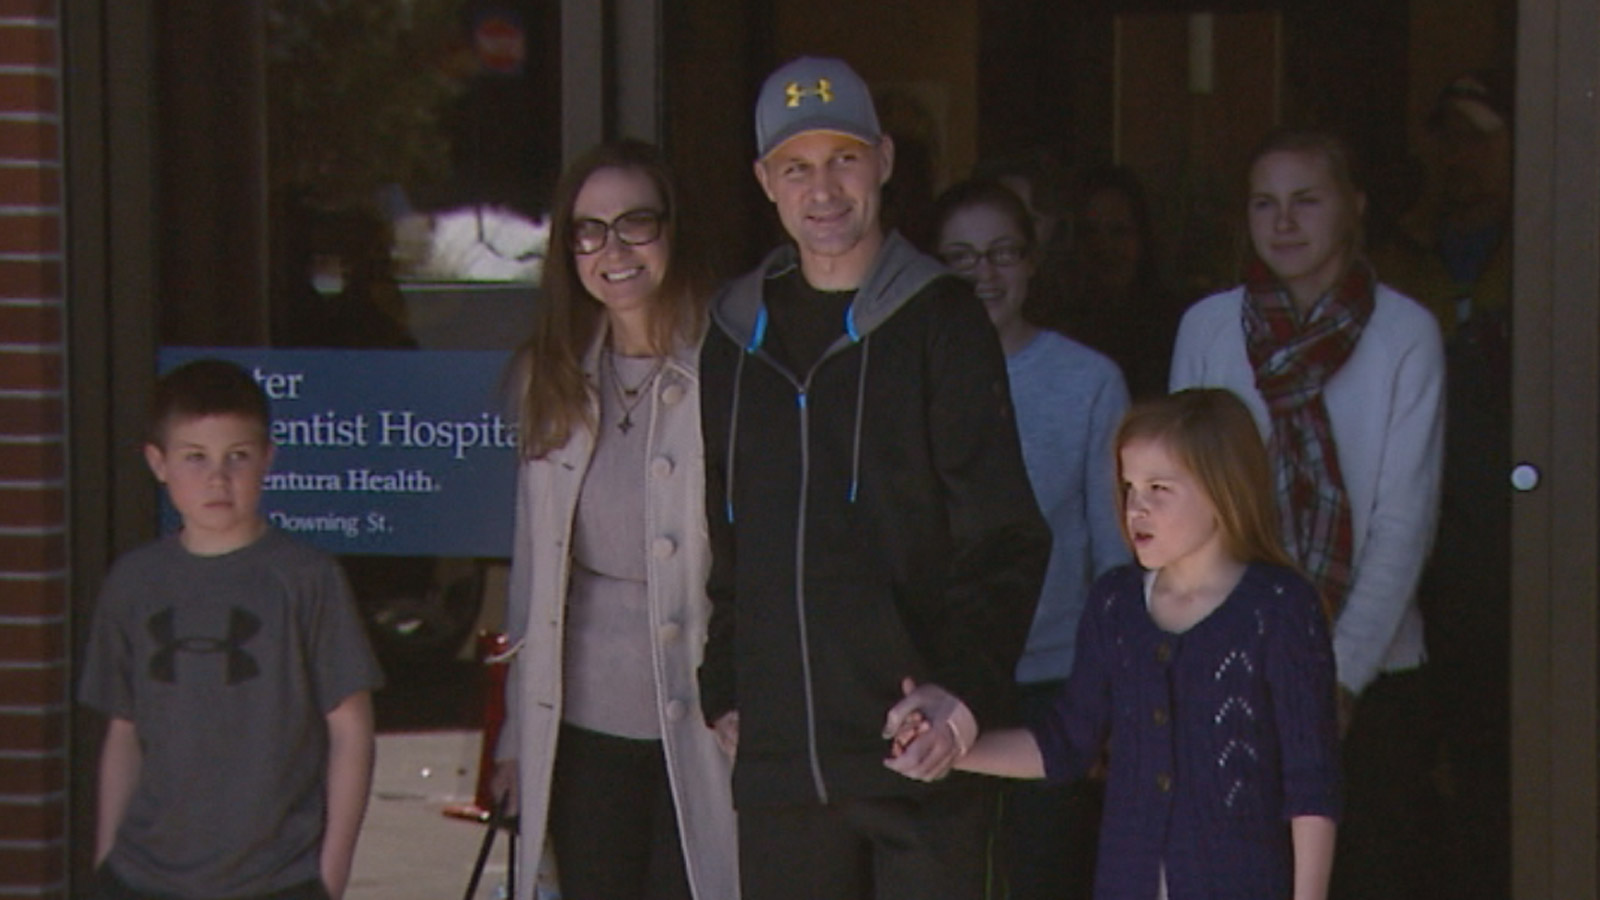 John Adsit leaves the hospital (credit: CBS)